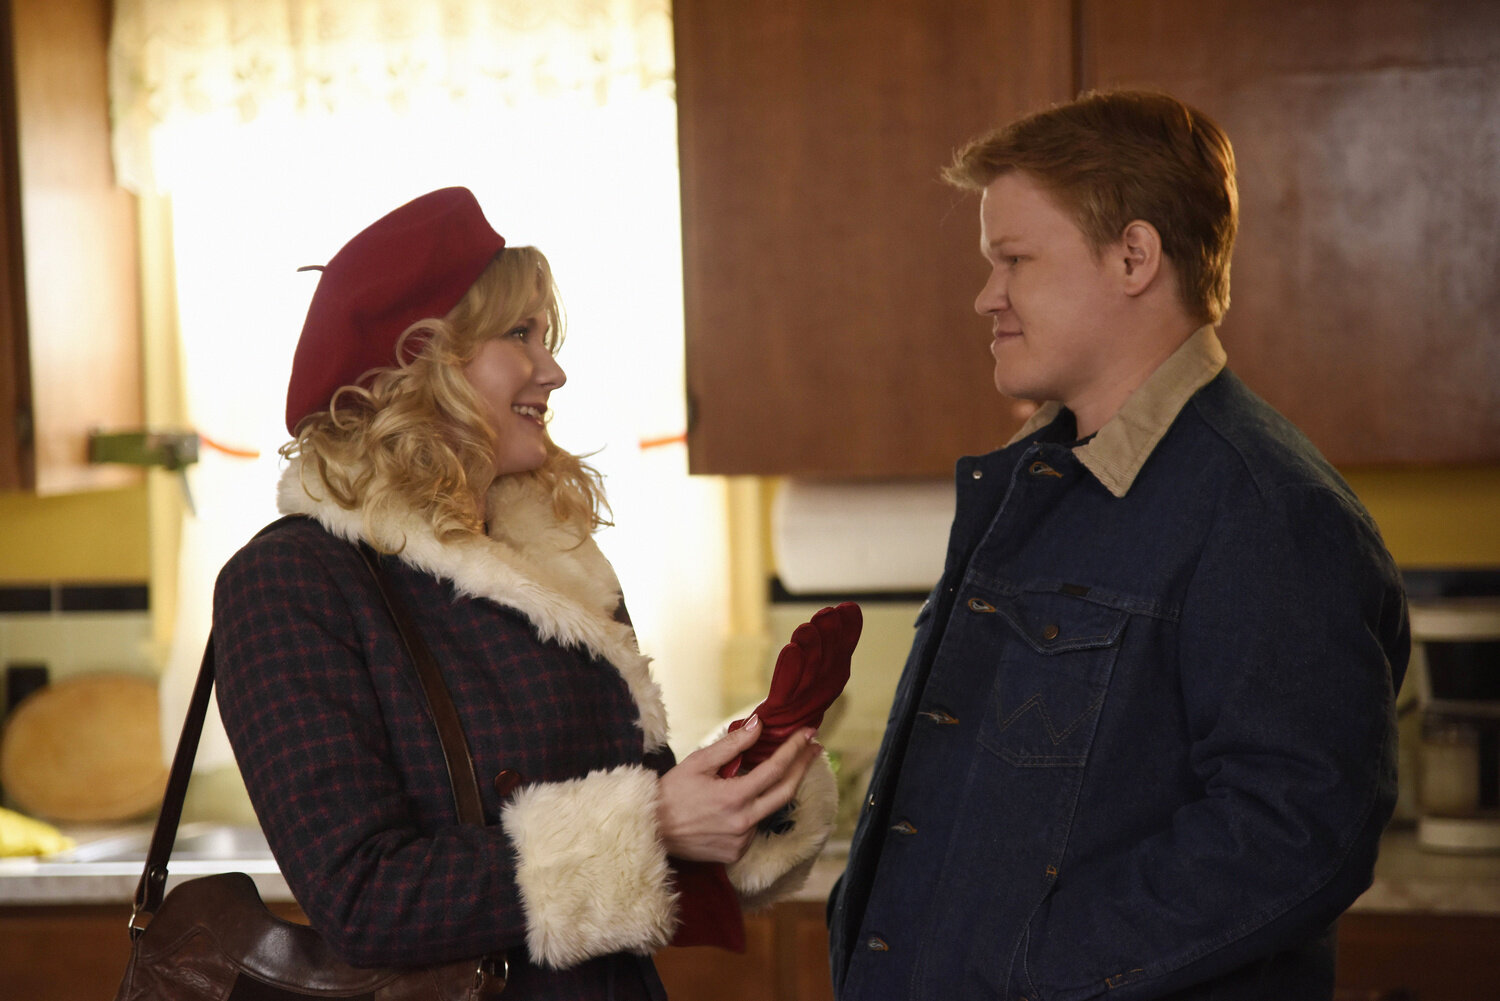 "Fargo (2014) - Dunst played a small town beautician in the 1970s who dreams of a life that is bigger, better and different than the one she has in Minnesota. Her performance is complemented by Jesse Plemons, her now real-life fiancé, who played her devoted husband and town butcher eager to settle down and start a family. (By the way, Plemons's speech at the Walk of Fame ceremony is so sweet and worth watching–especially since the two met while filming ""Fargo"").In ""Fargo"", Dunst portrays a woman who is unsatisfied with the role society has written for her. She represents so many women who feel ""faulty"" when they cannot find a way to ""have it all"" and still be happy. Her storyline may not be where all of the violence is (a huge part of the show's appeal), but the revolution of the action around Dunst's character brings attention to a side of the show that is rooted in feminist ideals and female empowerment. ""Fargo"" is one of my personal favorite shows and Dunst is a huge reason why.(Image courtesy of IMDB/2014)"